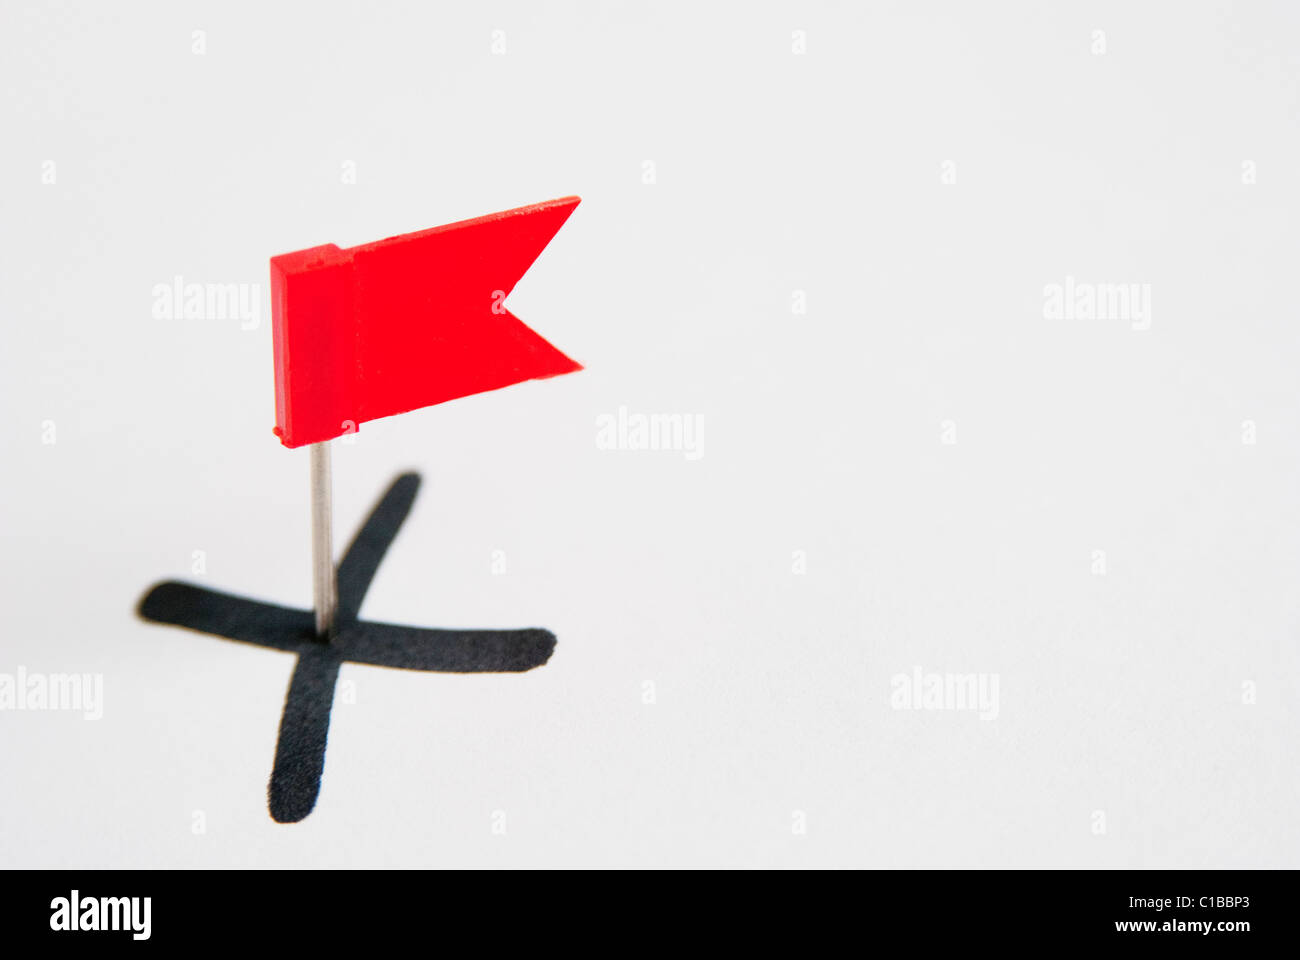 Red flag on X - Stock Image